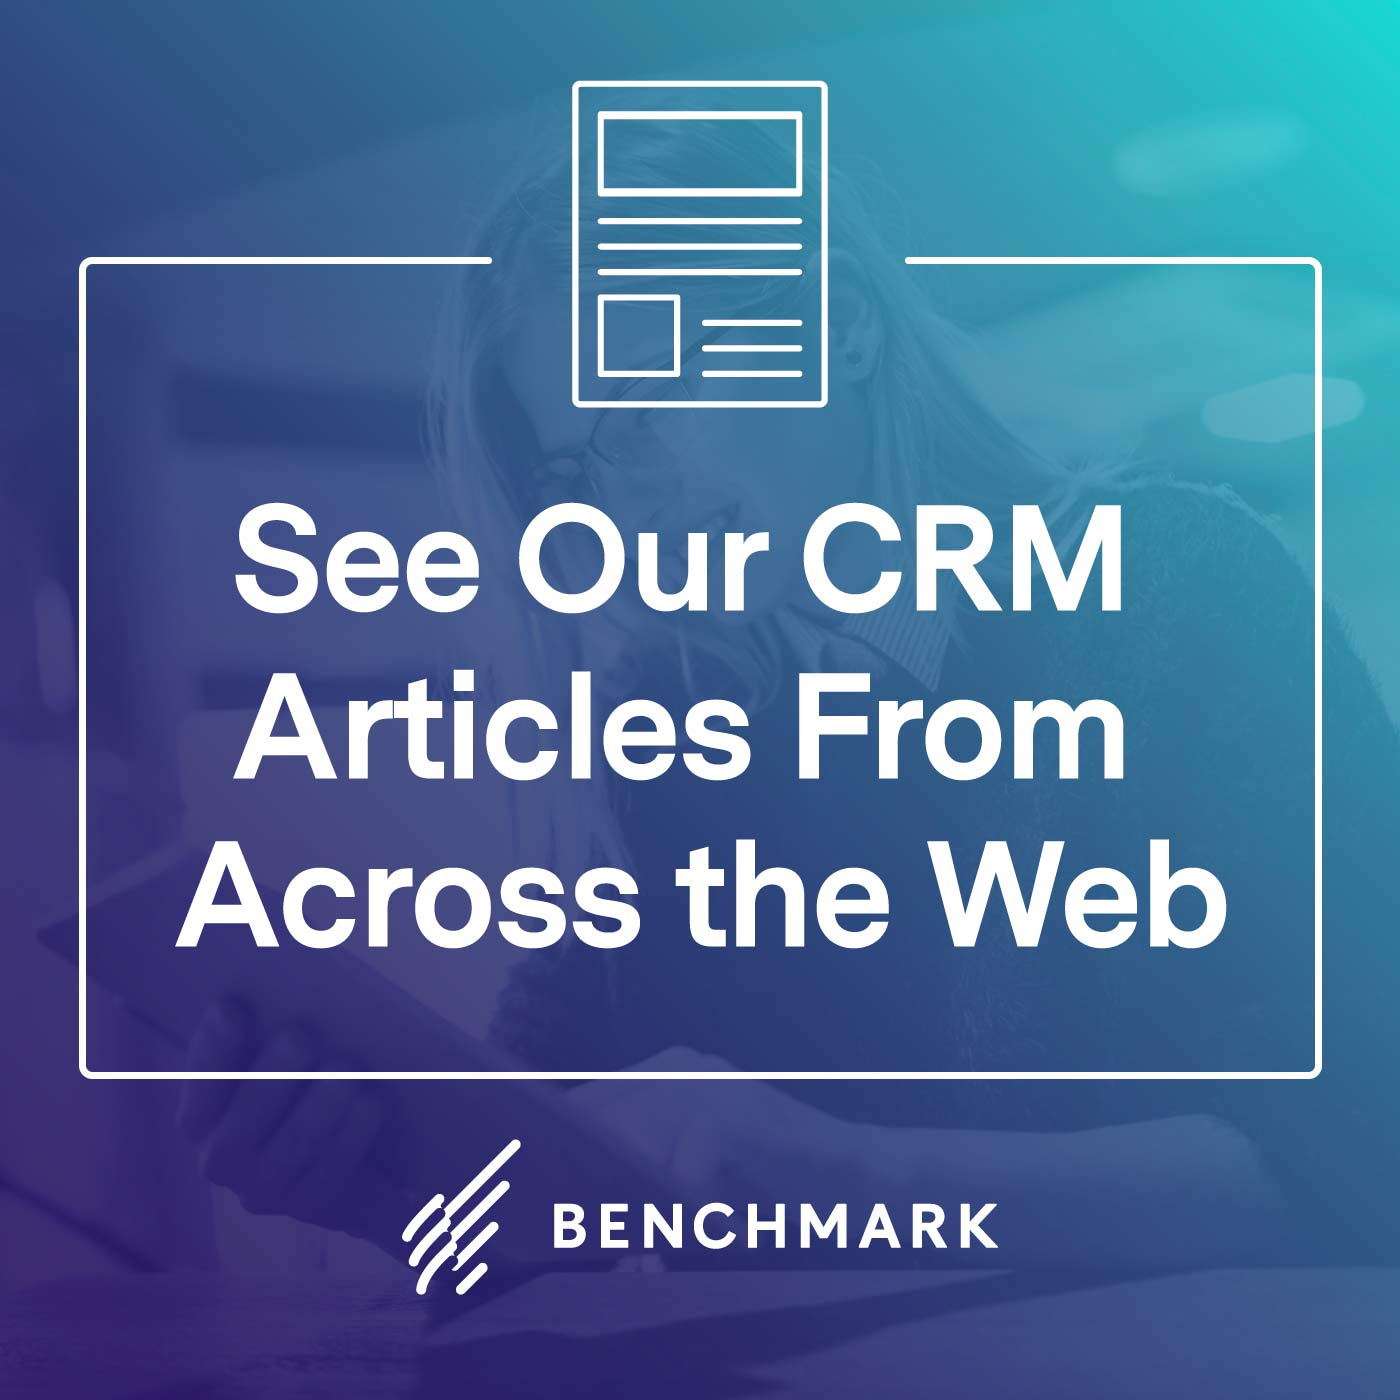 See Our CRM Articles From Across the Web